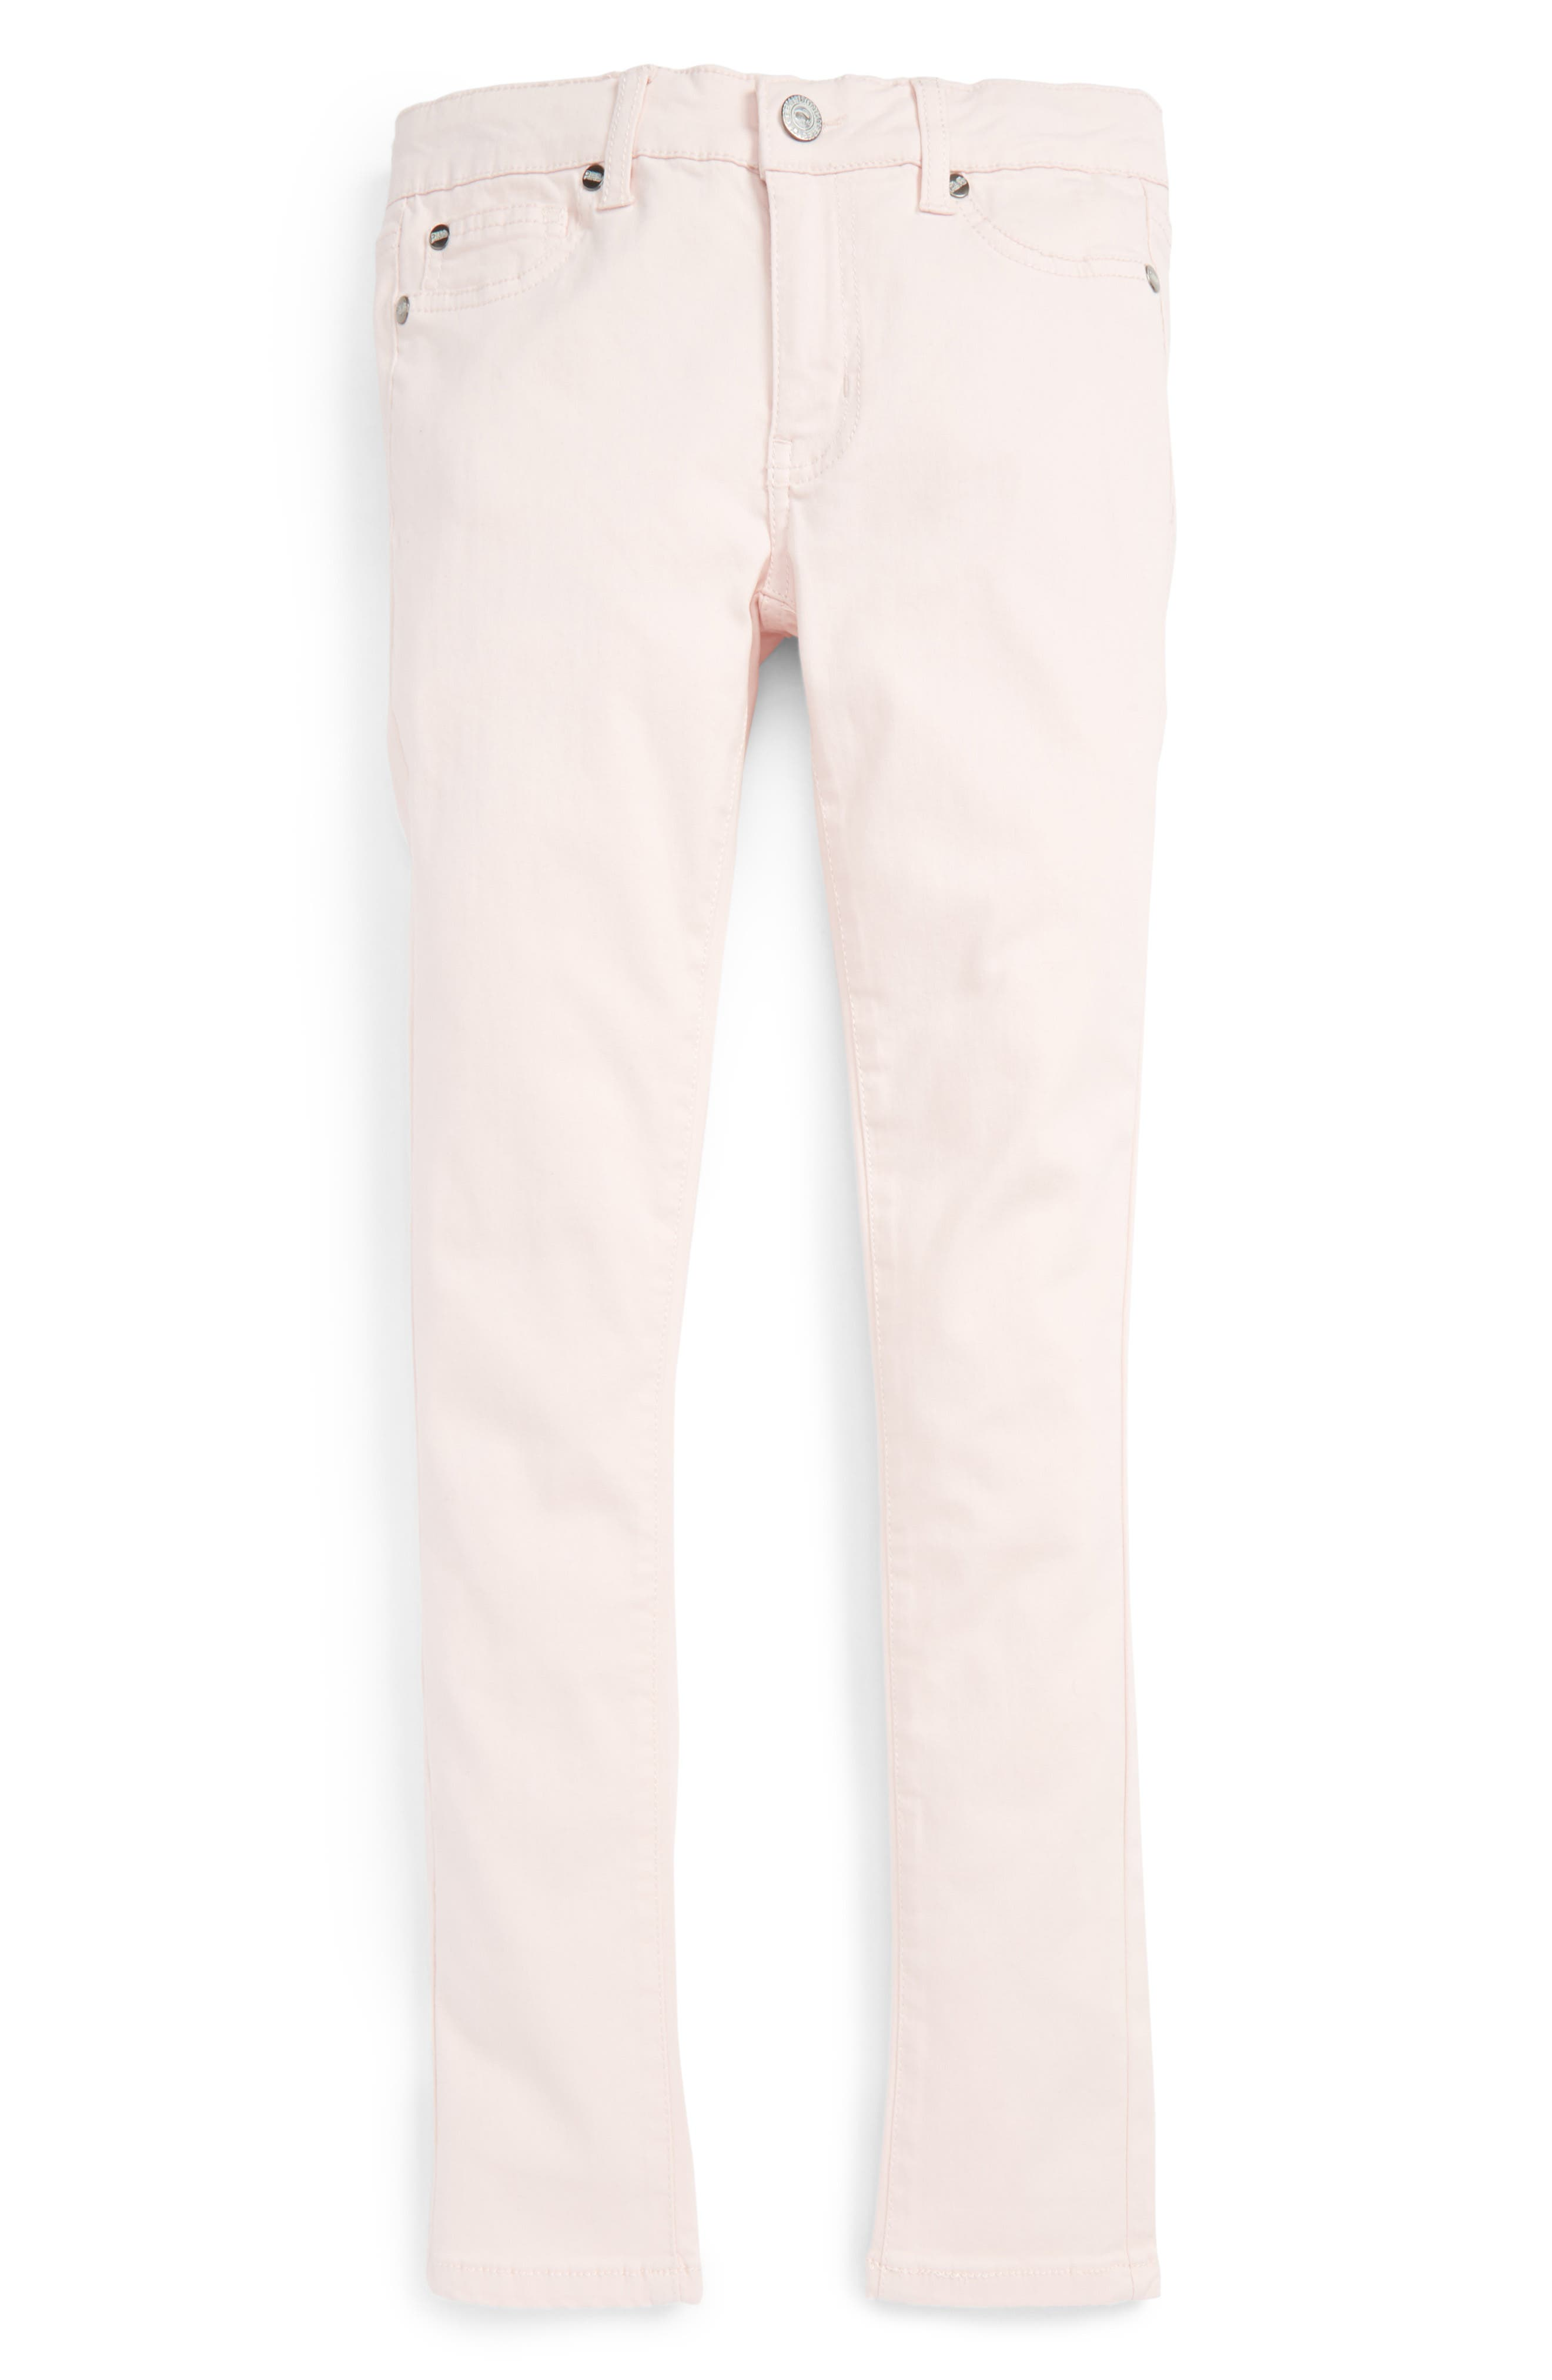 Taylor Skinny Jeans,                         Main,                         color, 682